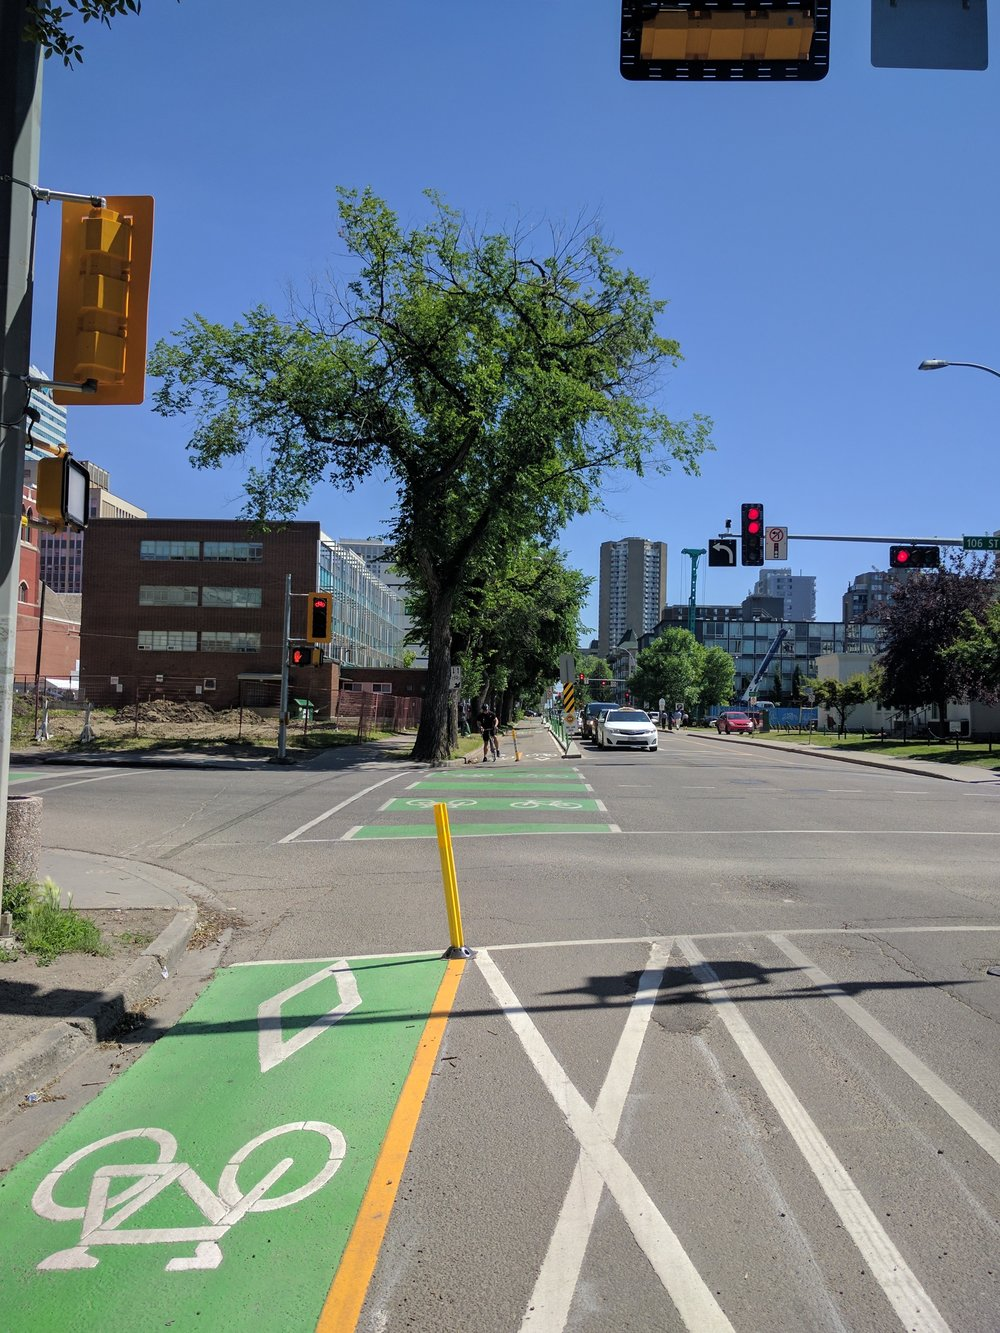 New bike lanes on 100th avenue in downtown Edmonton. Photo credit: Helen Frost.